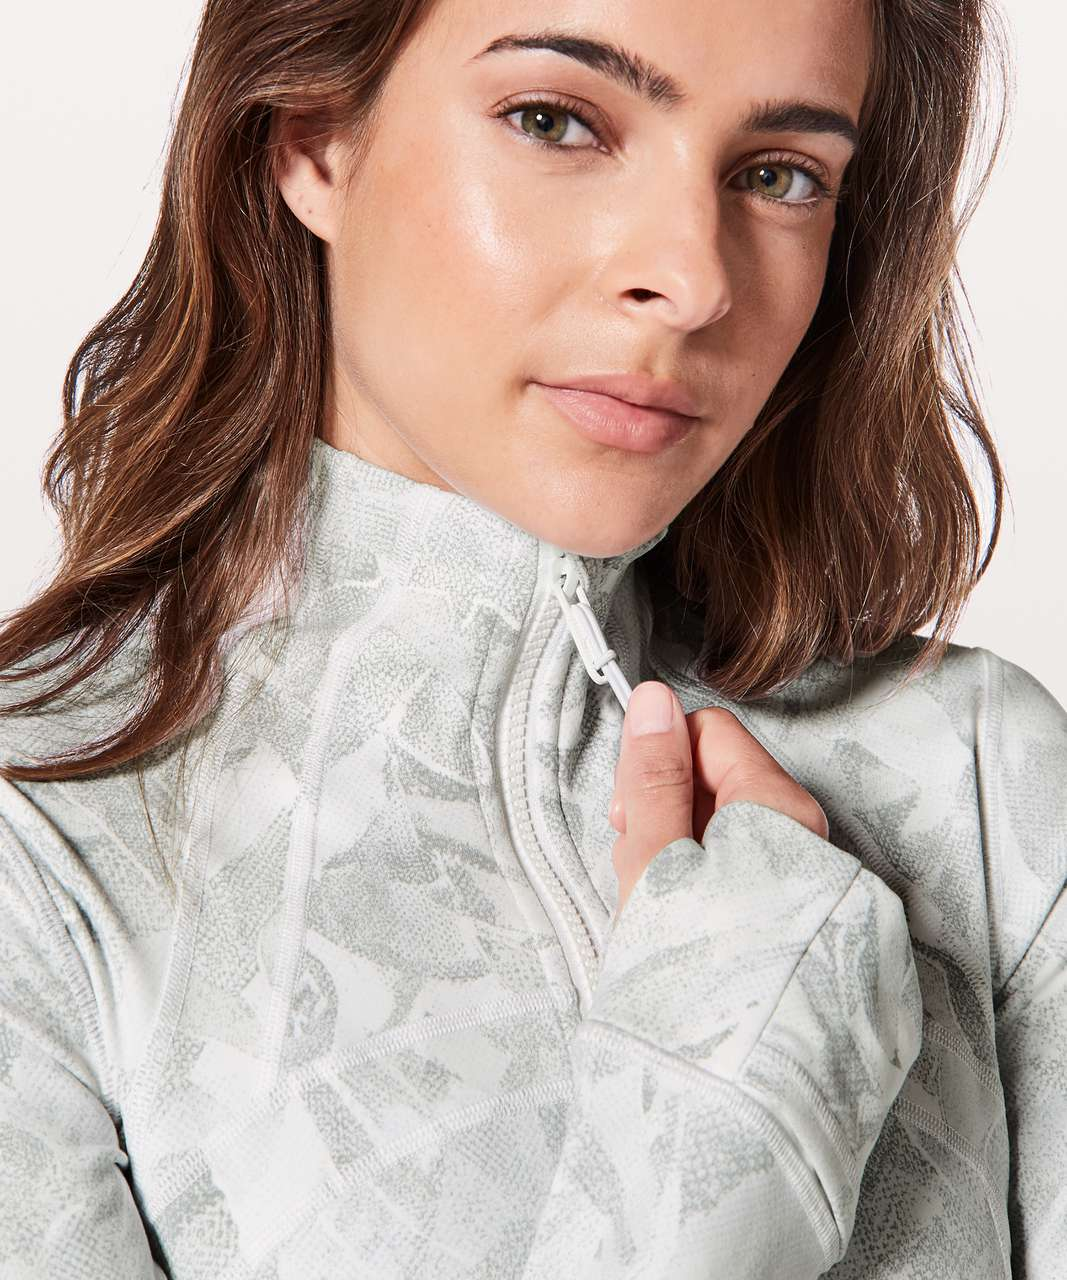 Lululemon Define Jacket - Jasmine White Multi